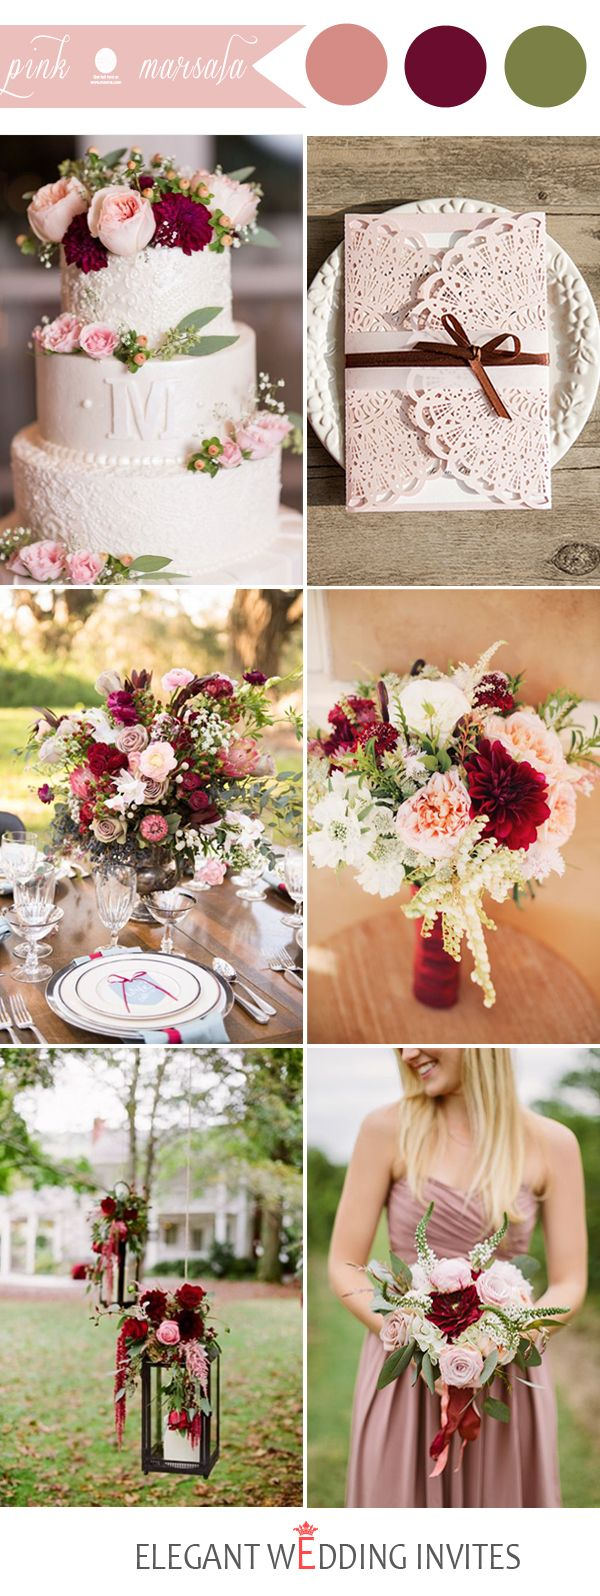 48 Perfect Pink Wedding Color Combination Ideas Elegantweddinginvites Com Blog Pink Wedding Colors Summer Wedding Colors Fall Wedding Colors